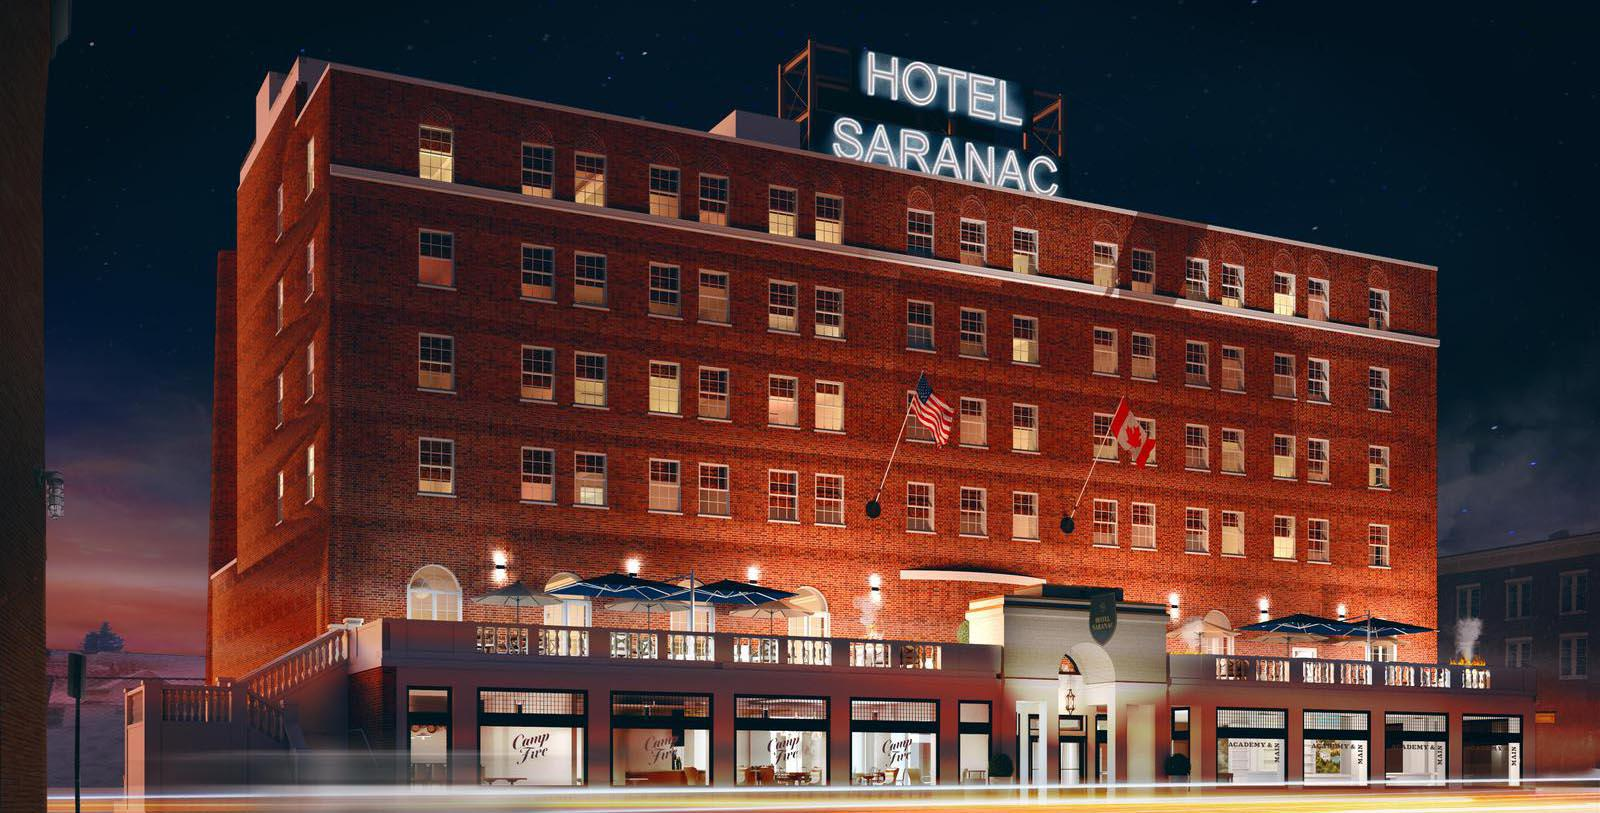 Image of Exterior at Night, Hotel Saranac, Curio Collection by Hilton in Saranac Lake, New York, 1927, Member of Historic Hotels of America, Special Offers, Discounted Rates, Families, Romantic Escape, Honeymoons, Anniversaries, Reunions